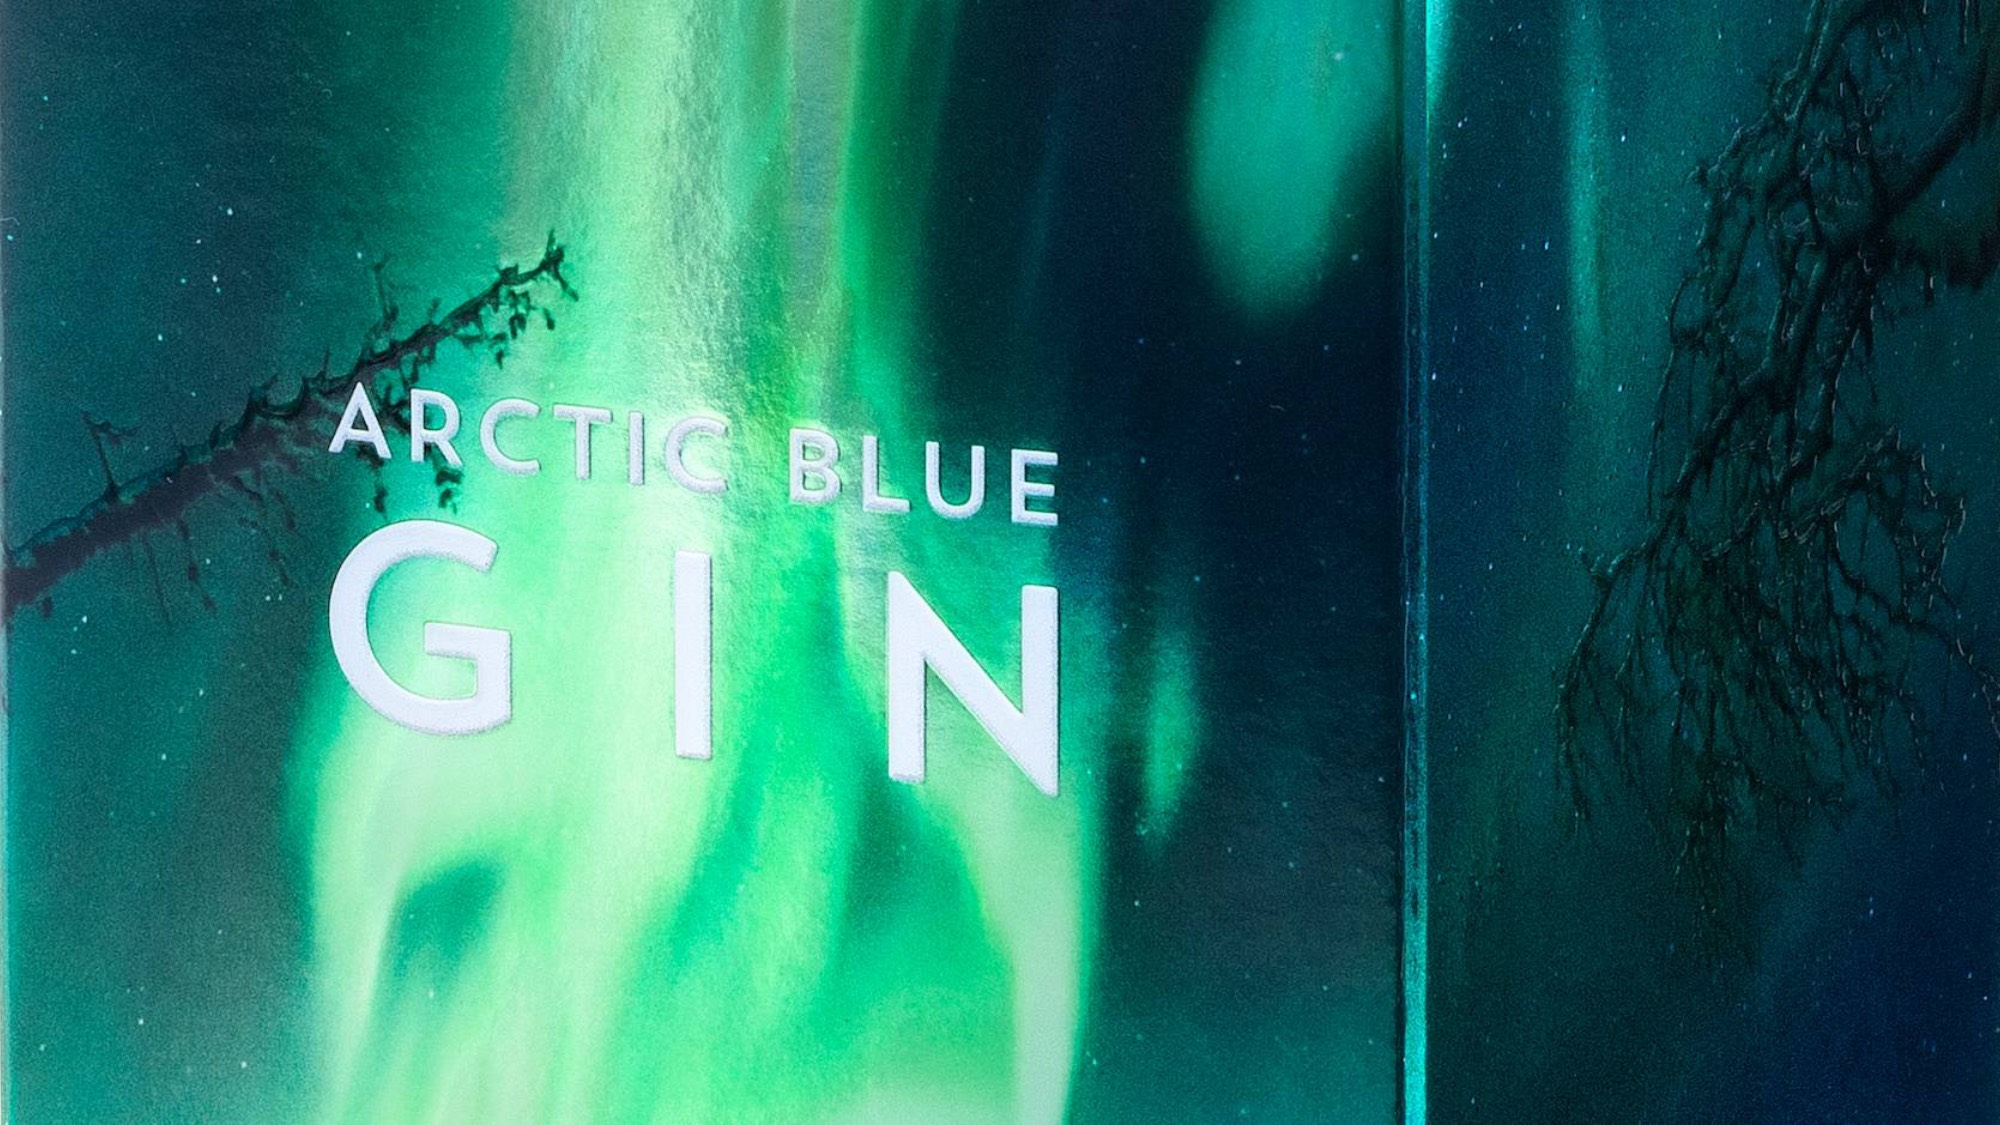 A gin packaging covered in the northern lights